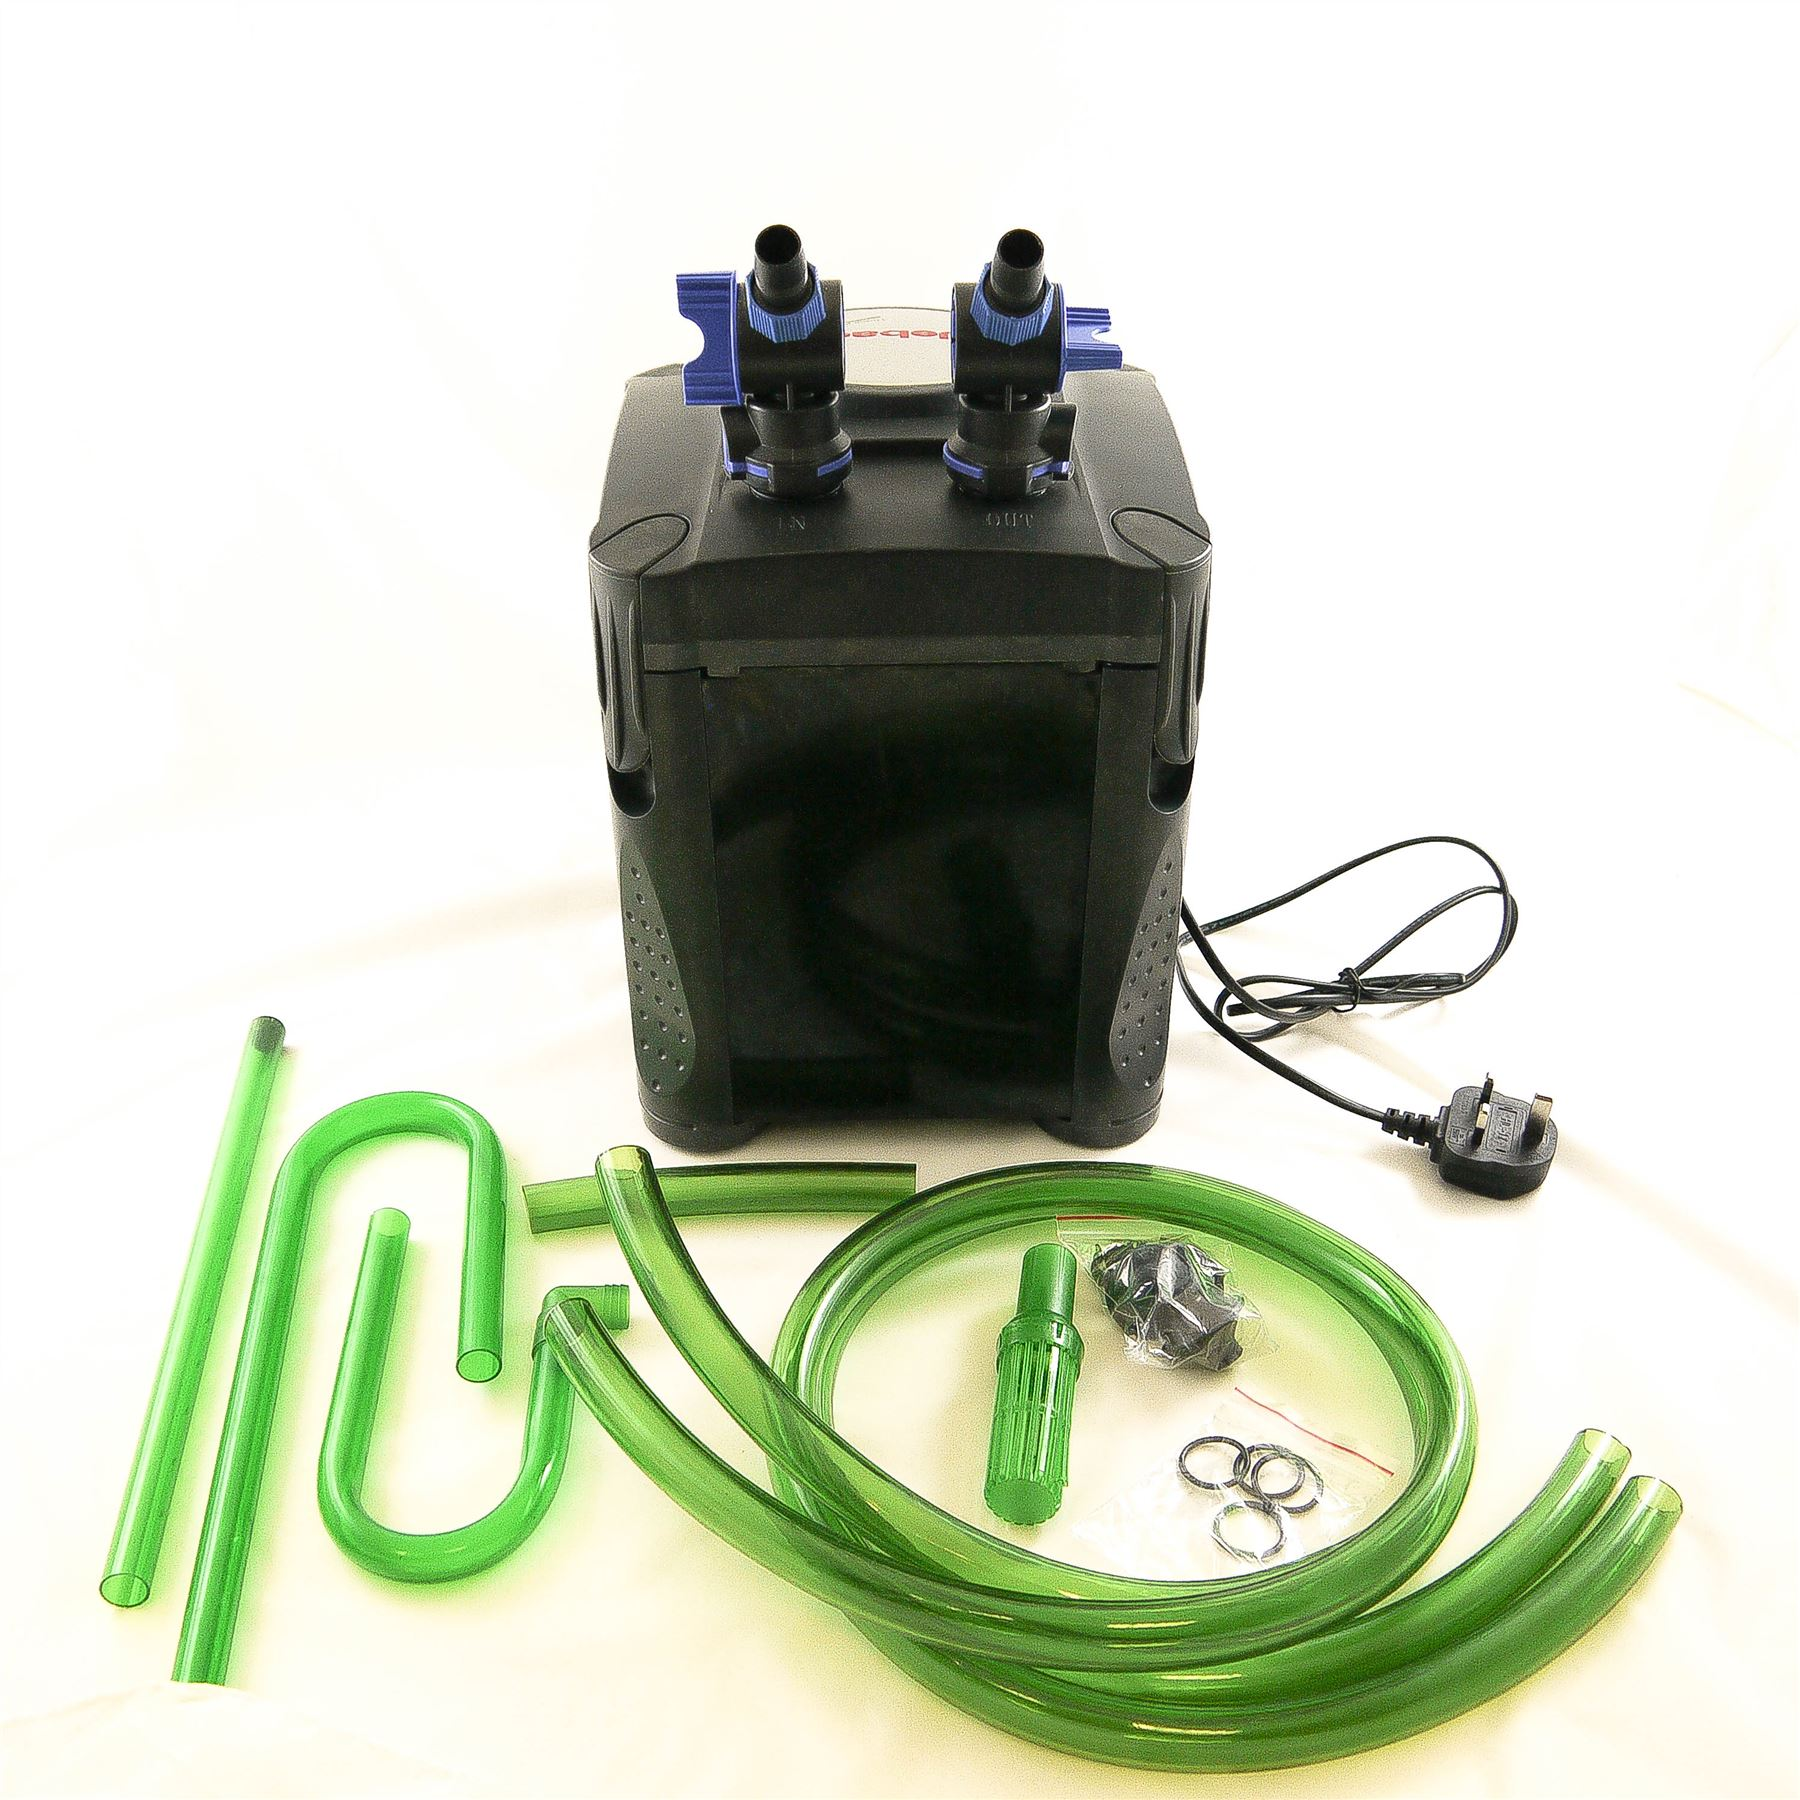 Fish tank filter system aqua kingdom which fish tank for Fish tank filtration